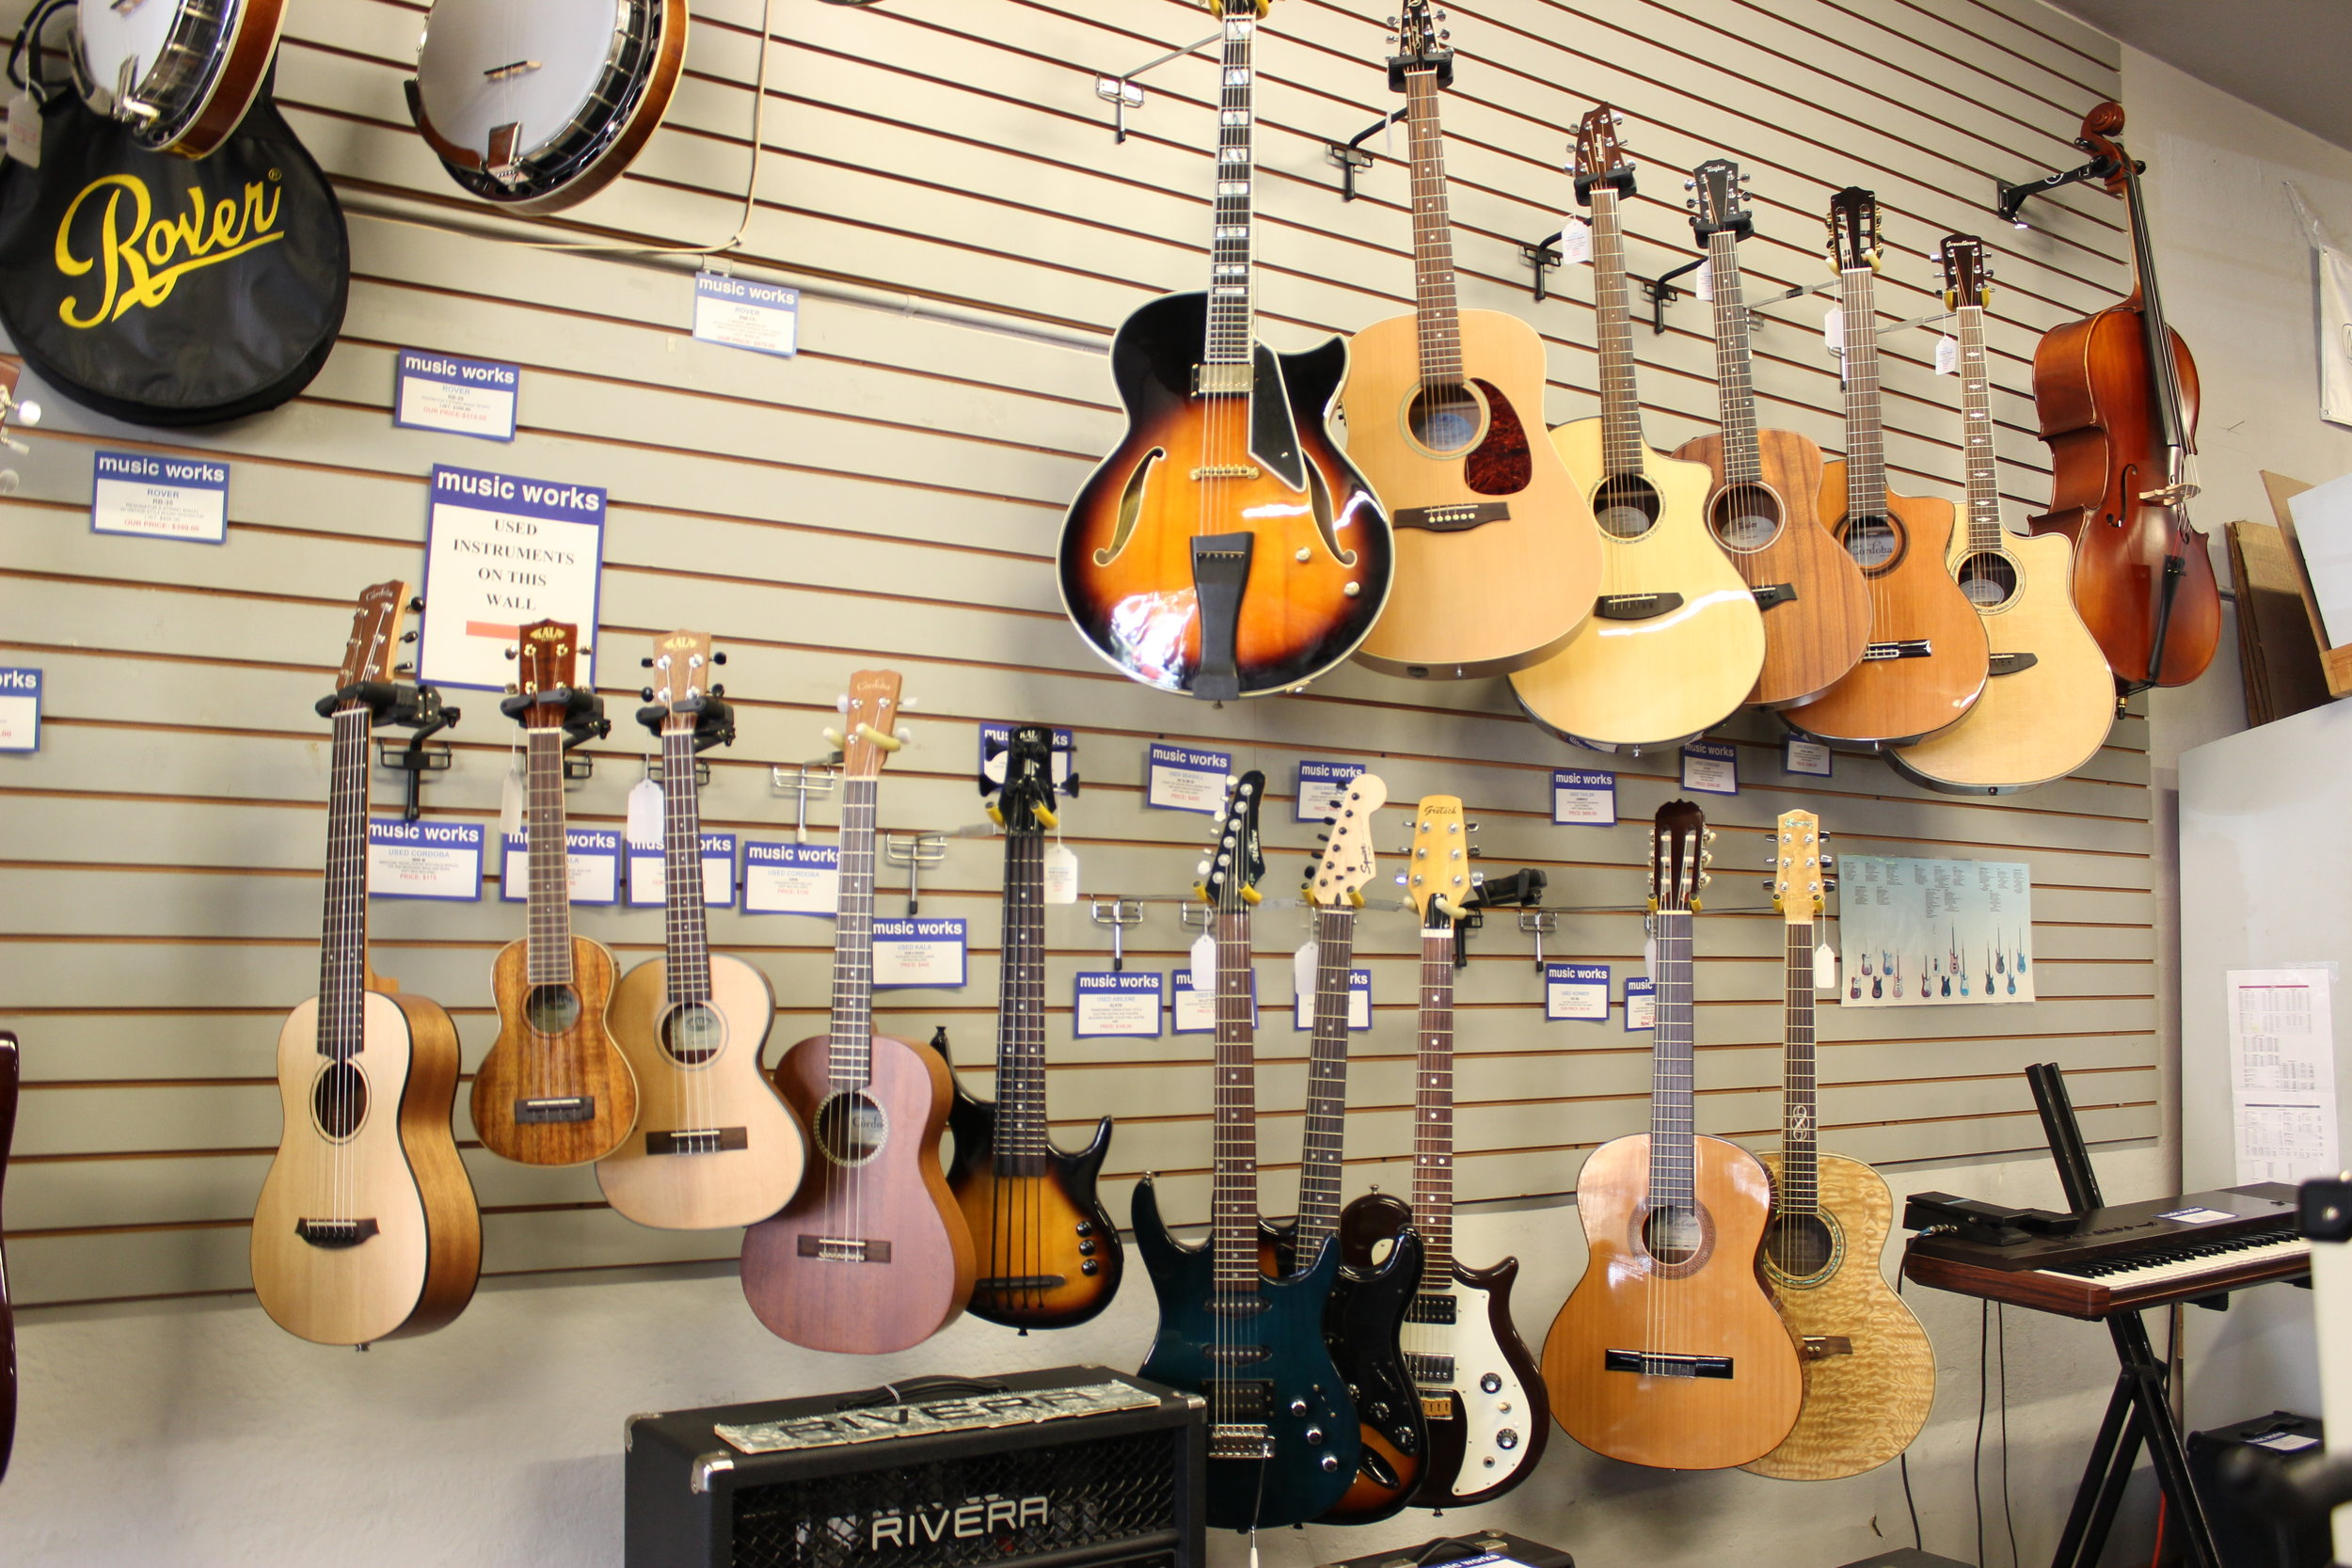 the wall of used equipment  Above is our selection of used instruments including electric guitars, a solid body UBASS, ukuleles, keyboard, steel and nylon string acoustics.